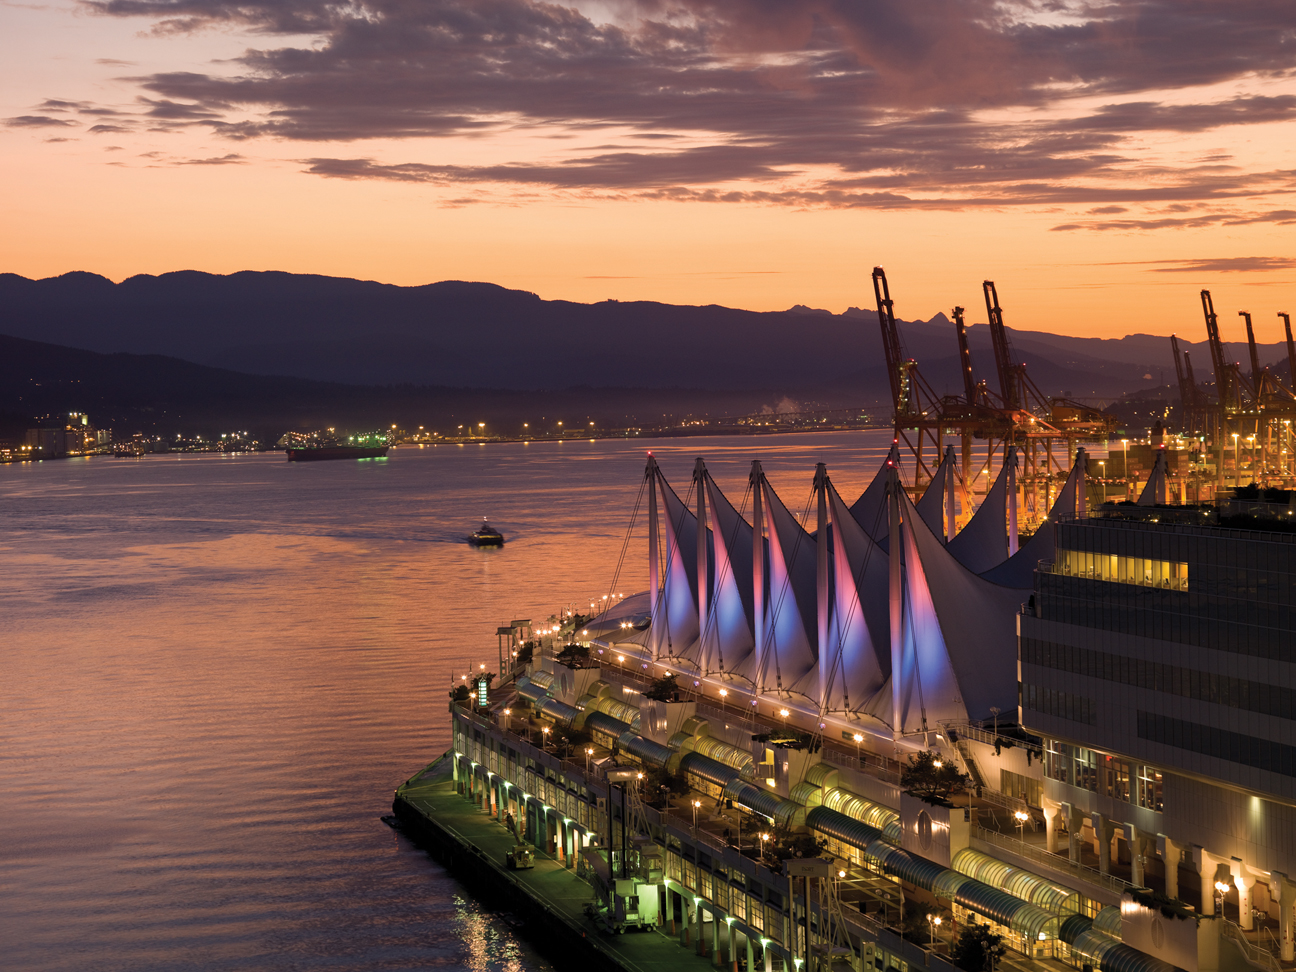 Canada Place Sails at dusk.jpg